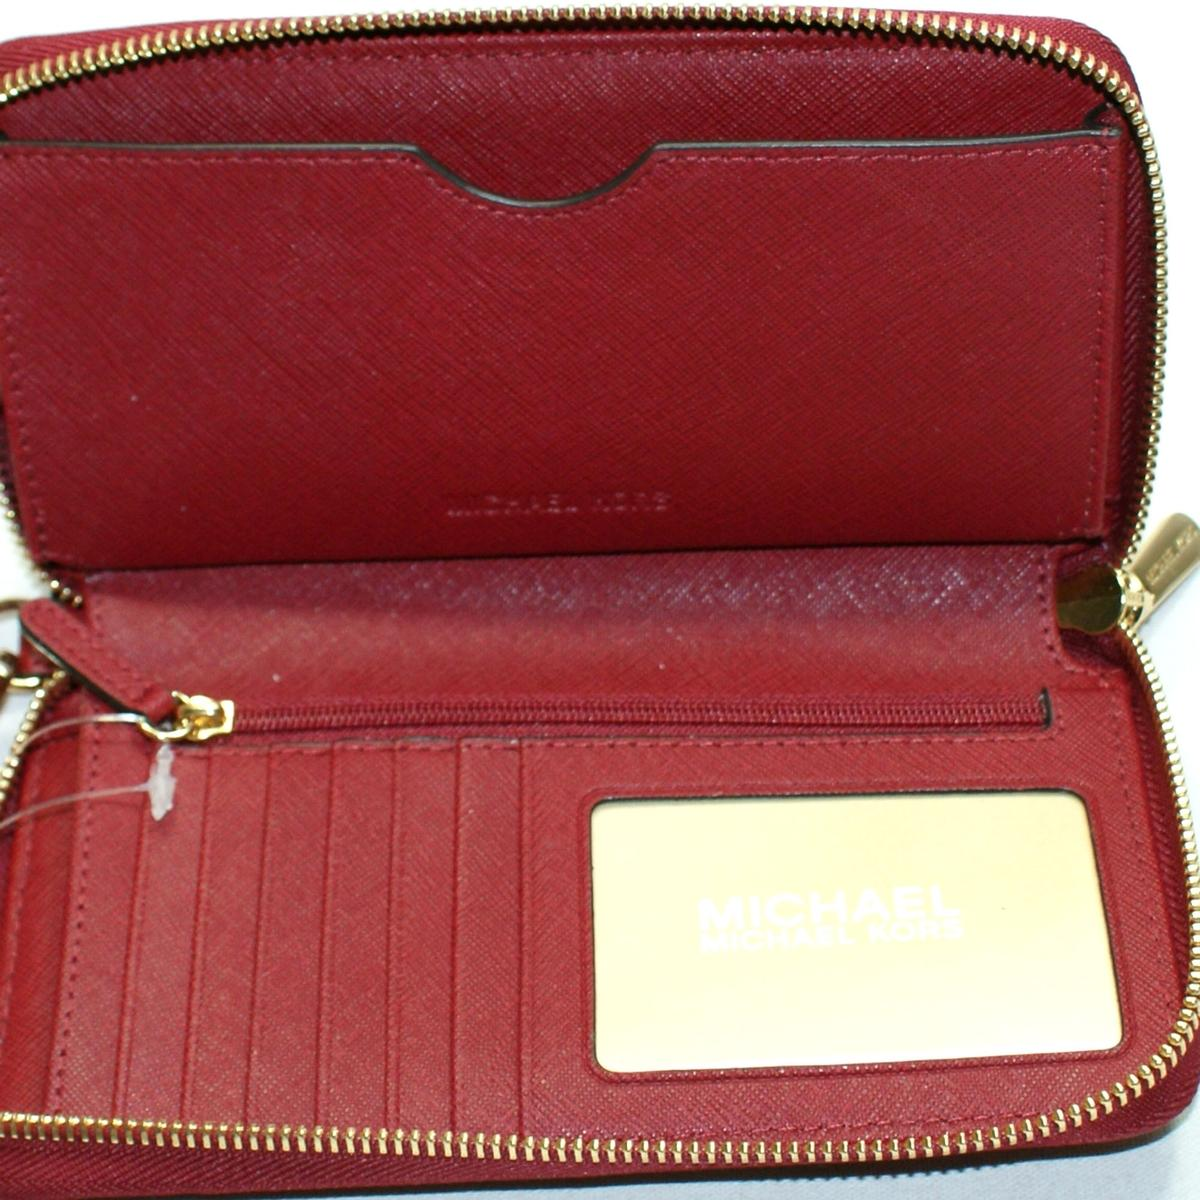 dfd297a1bb07 ... Home · Michael Kors · Jet Set Travel Flat Phone Case Leather Wallet  Clutch Wristlet Cherry ...